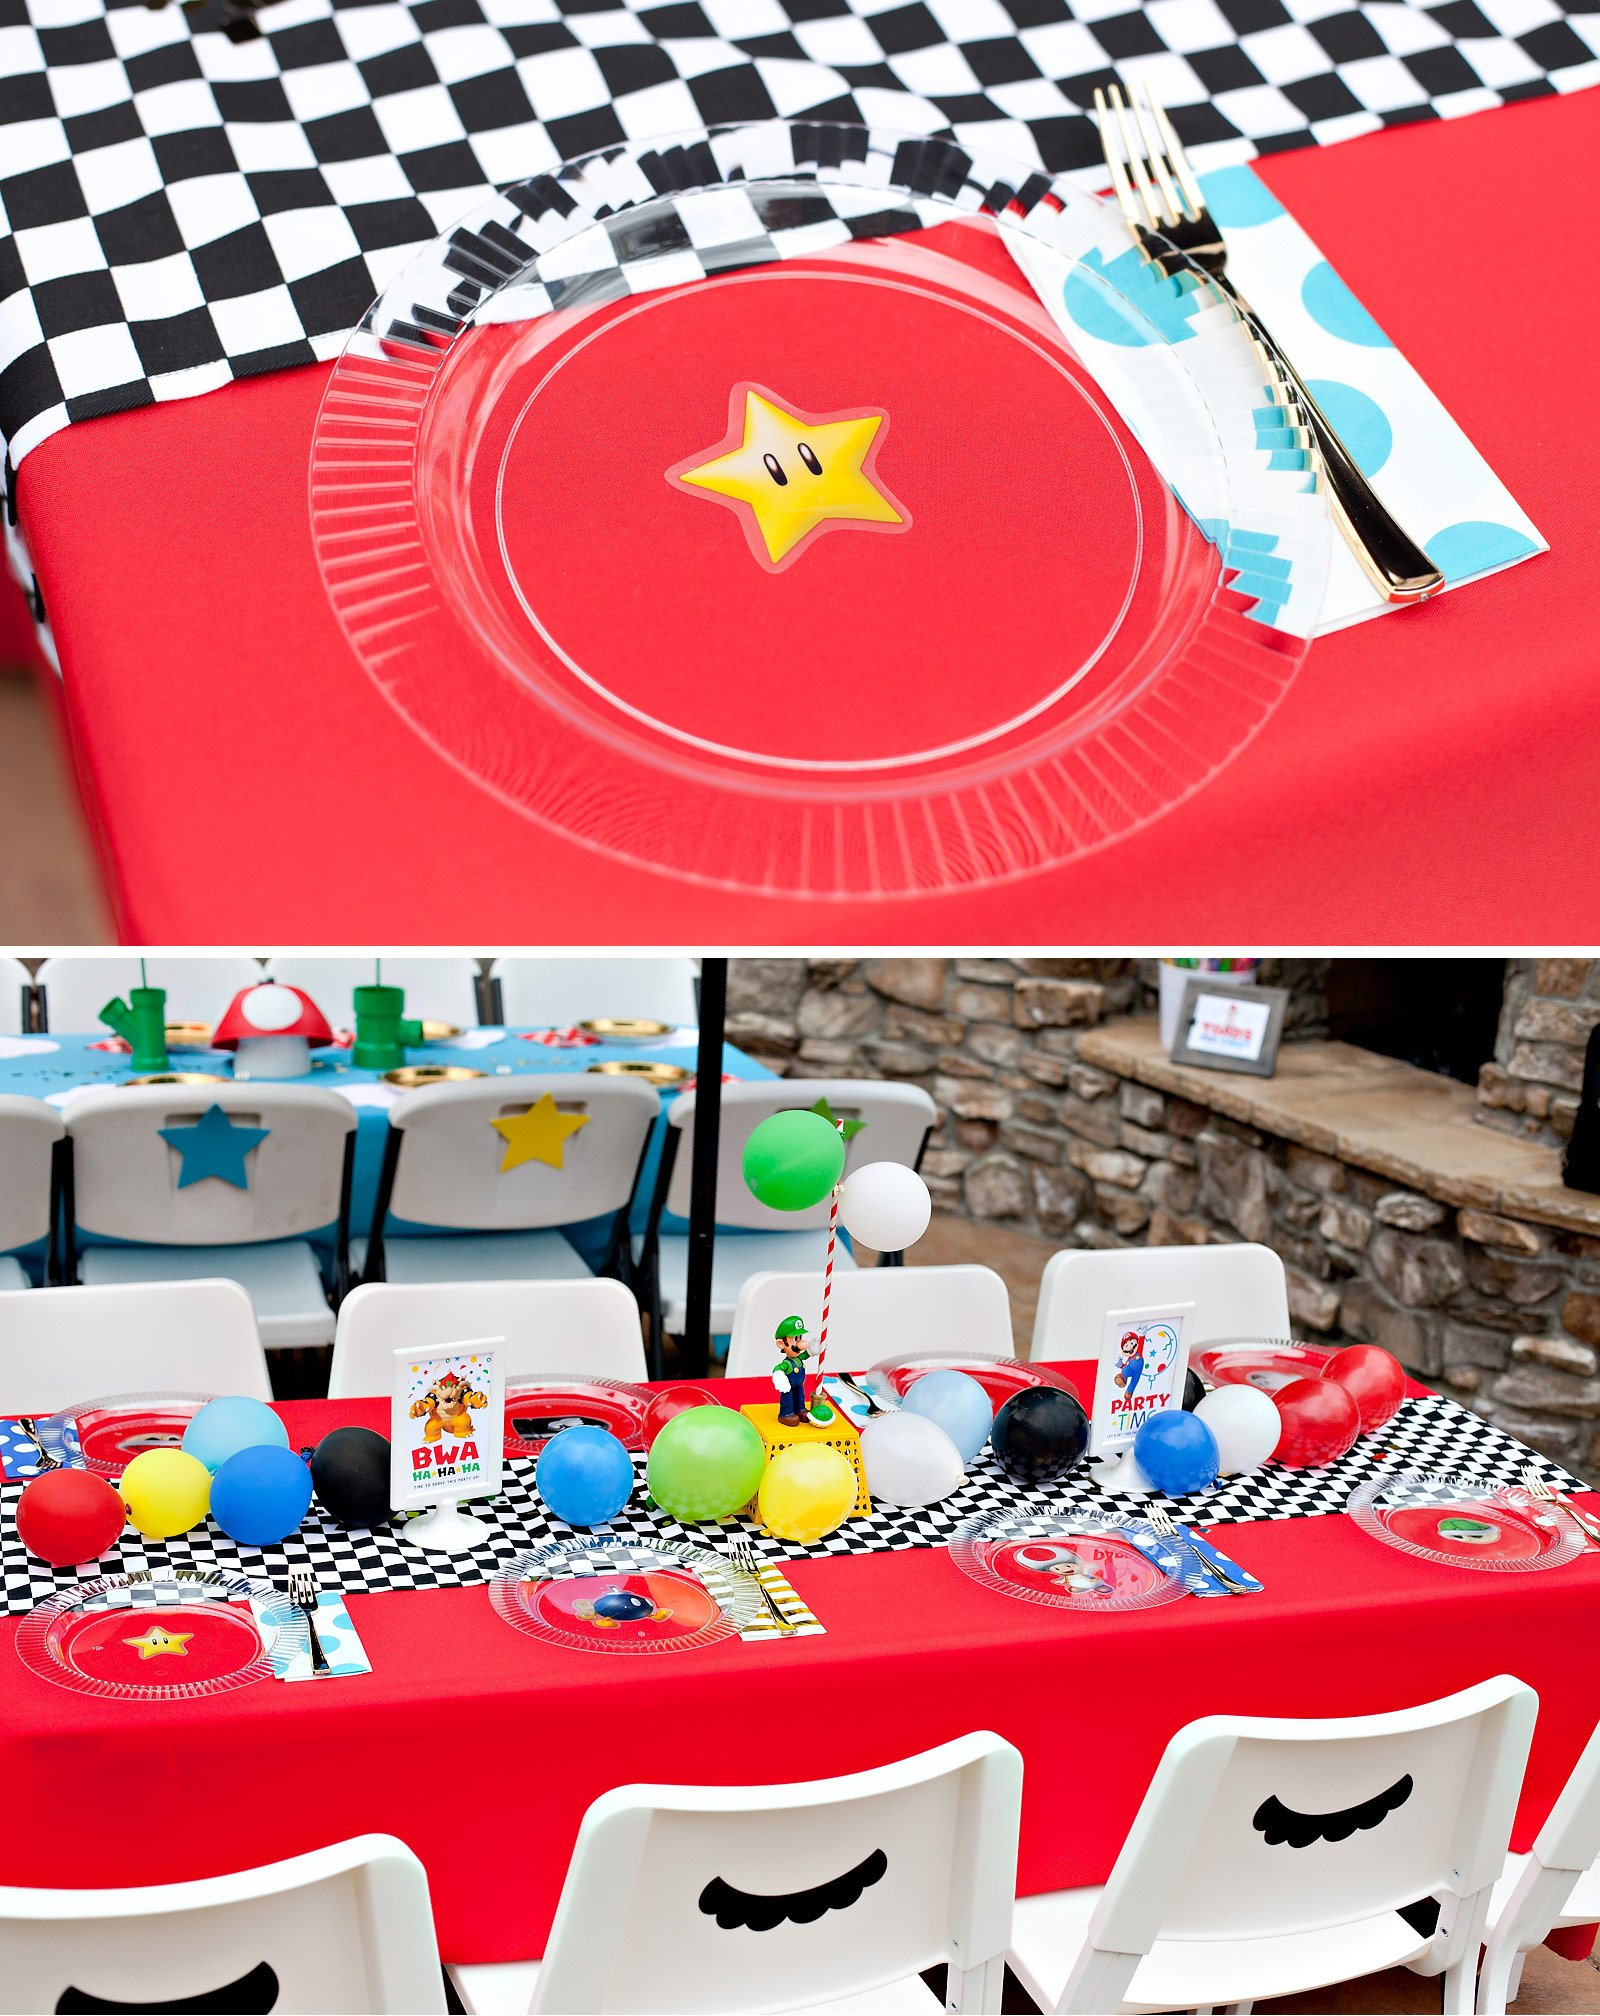 Mario Kart Party Table